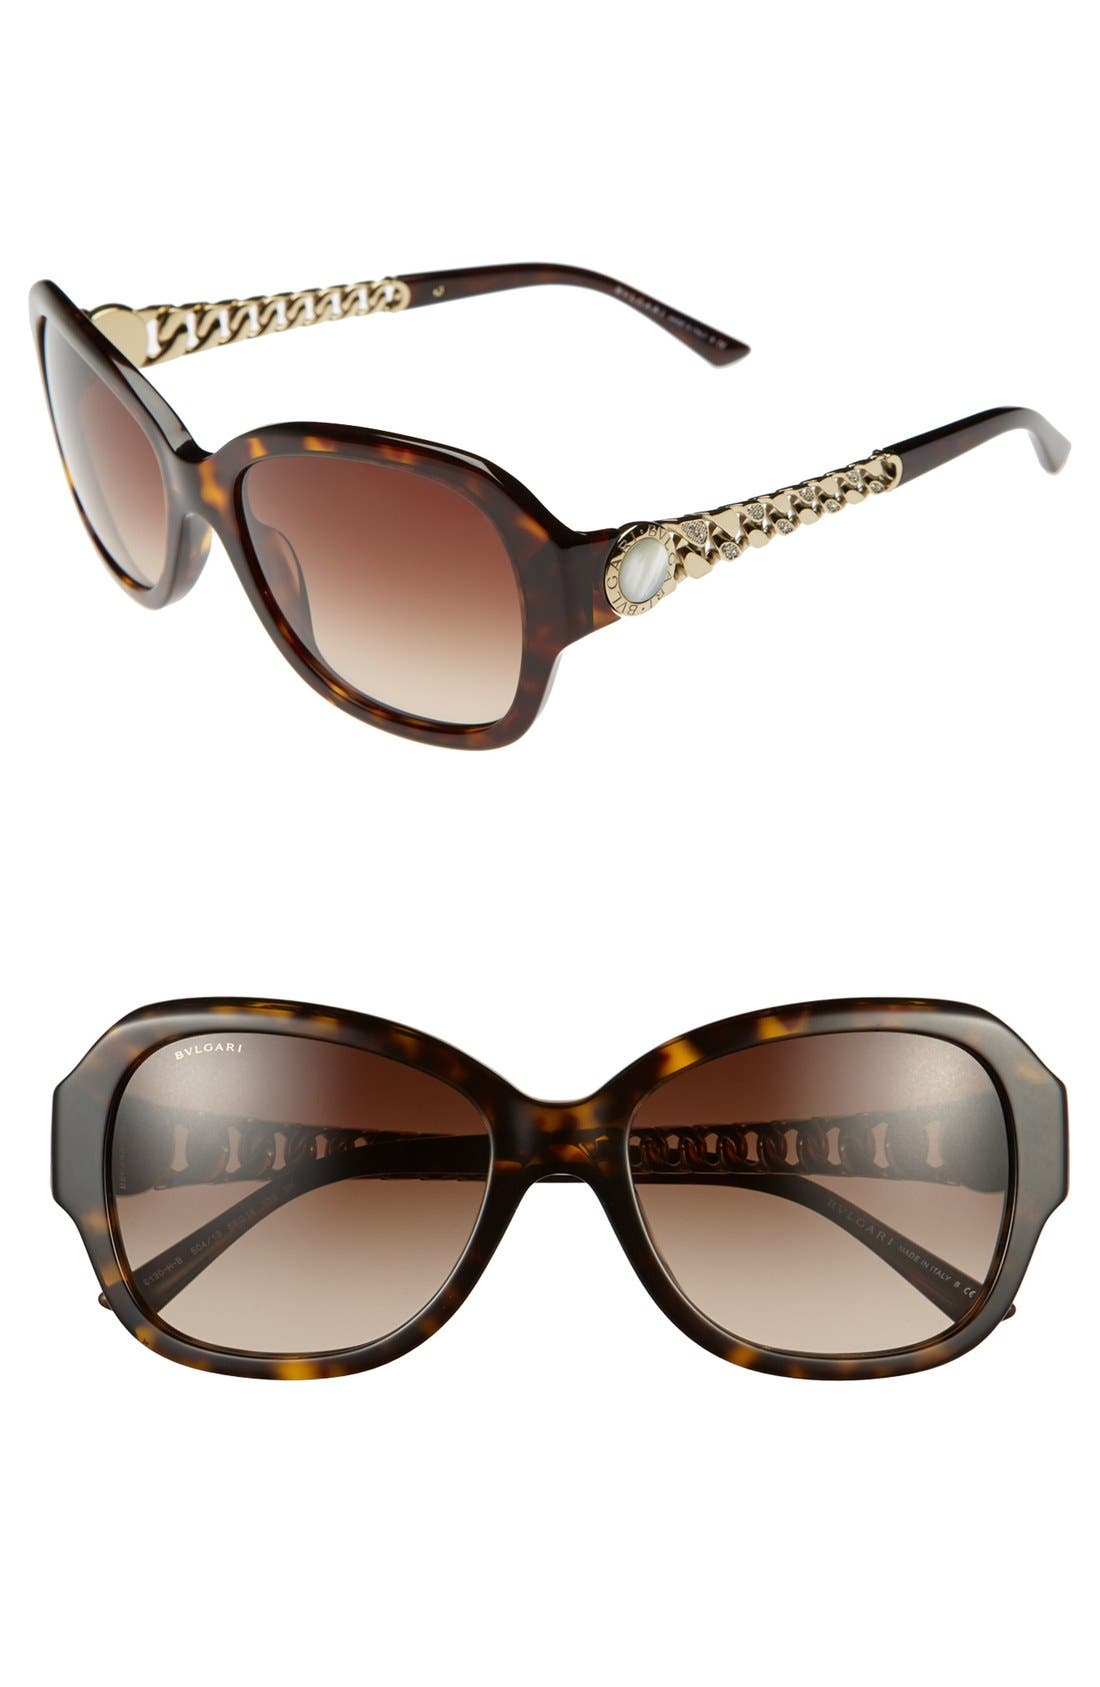 Main Image - BVLGARI 56mm Oversized Sunglasses